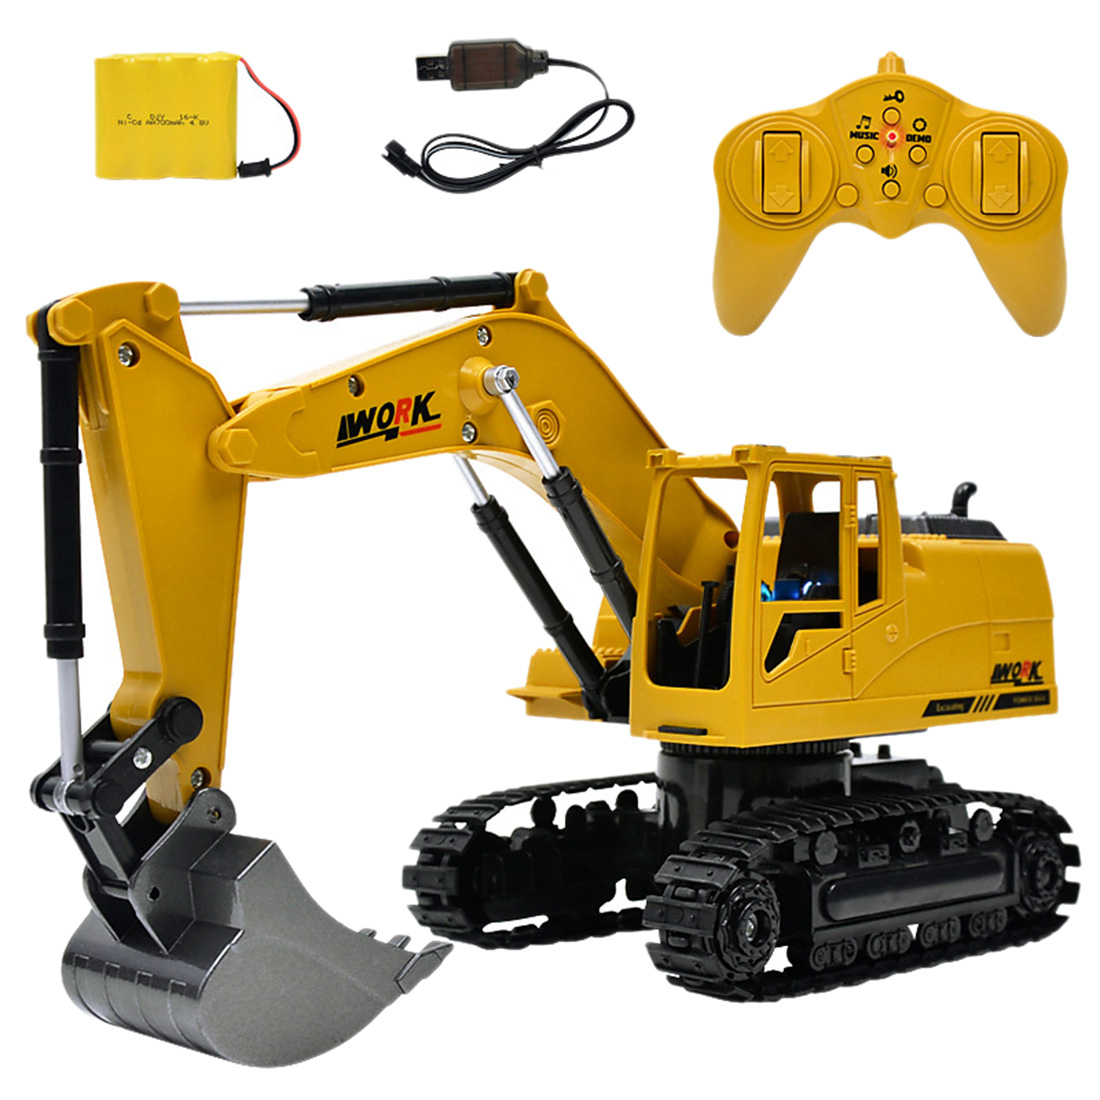 1:24 2.4G RC 8 Channel Crawler Excavator Shovel Crawler Navvy Model Construction Vehicle Toy Simulated Excavator Gift For Kids